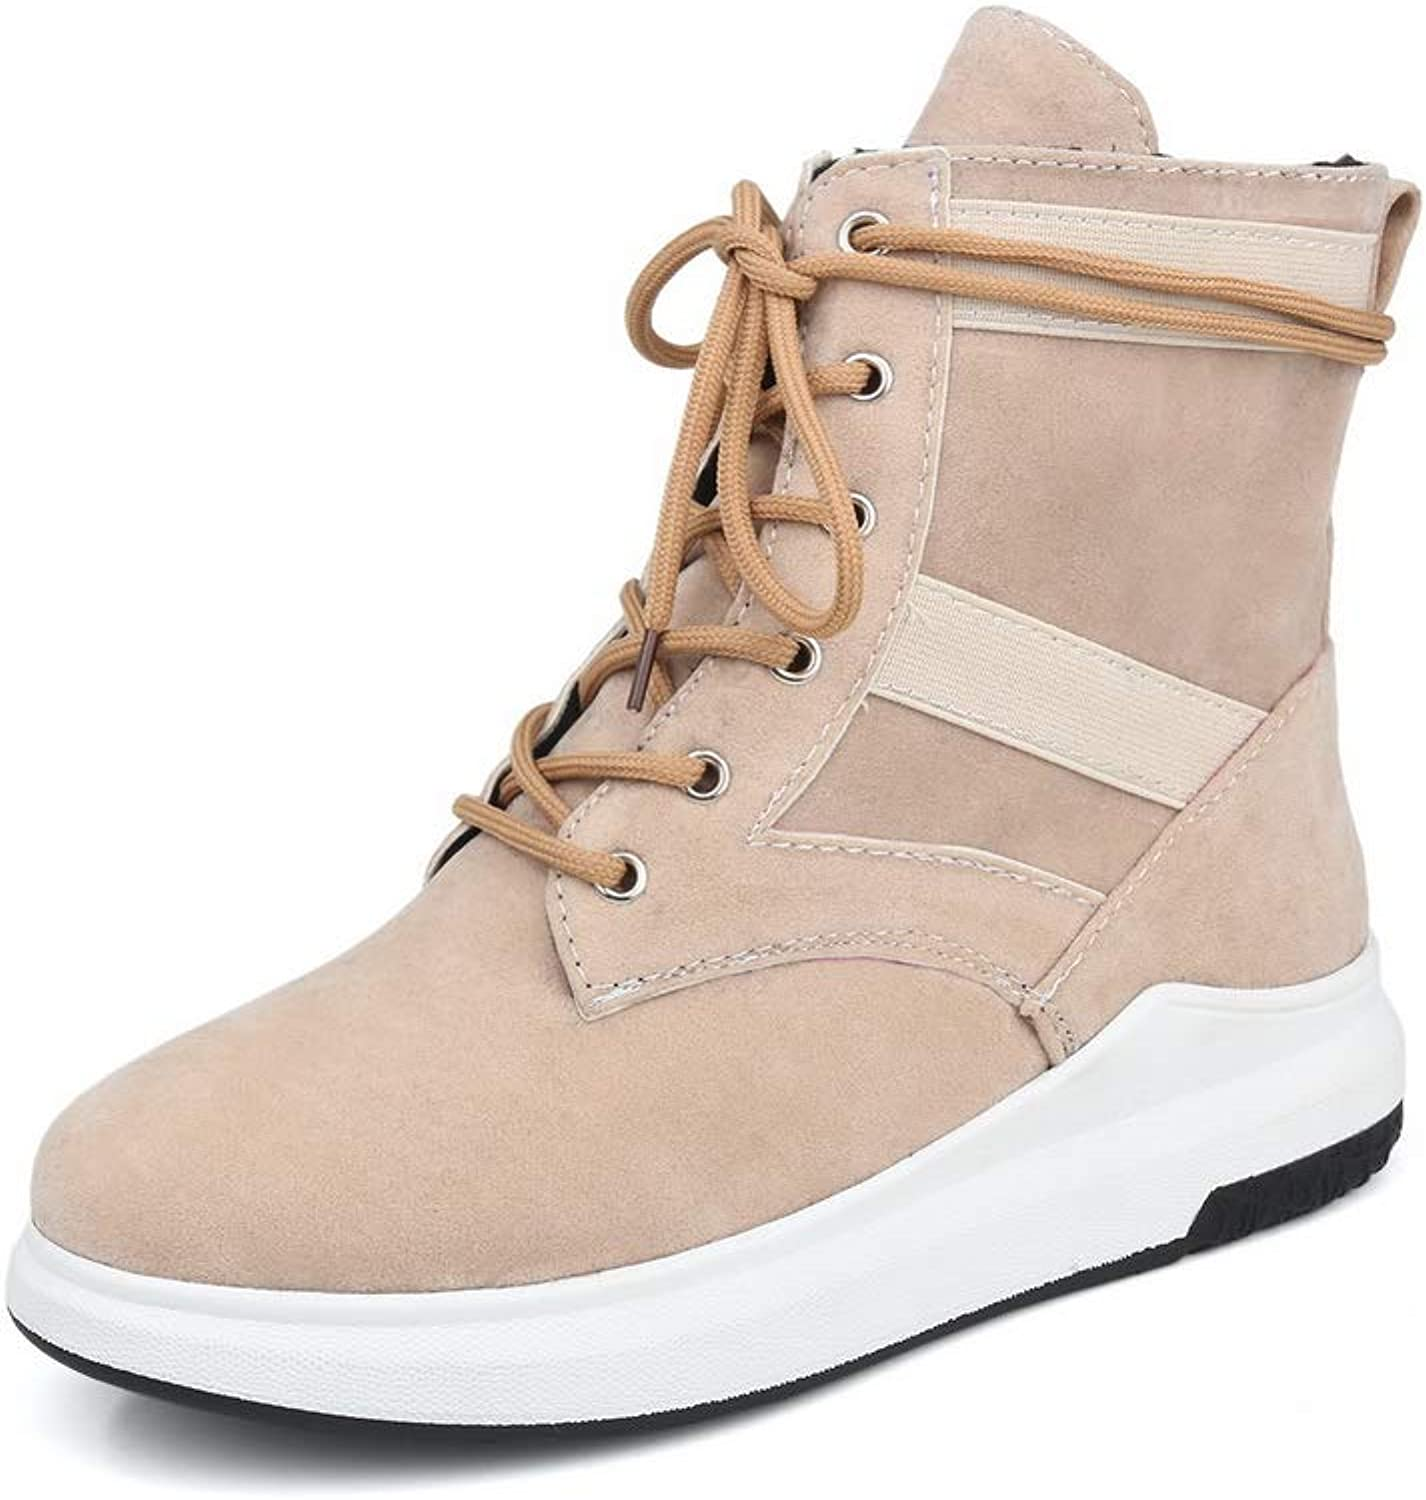 1TO9 Womens Assorted colors Travel Nubuck Urethane Boots MNS02973